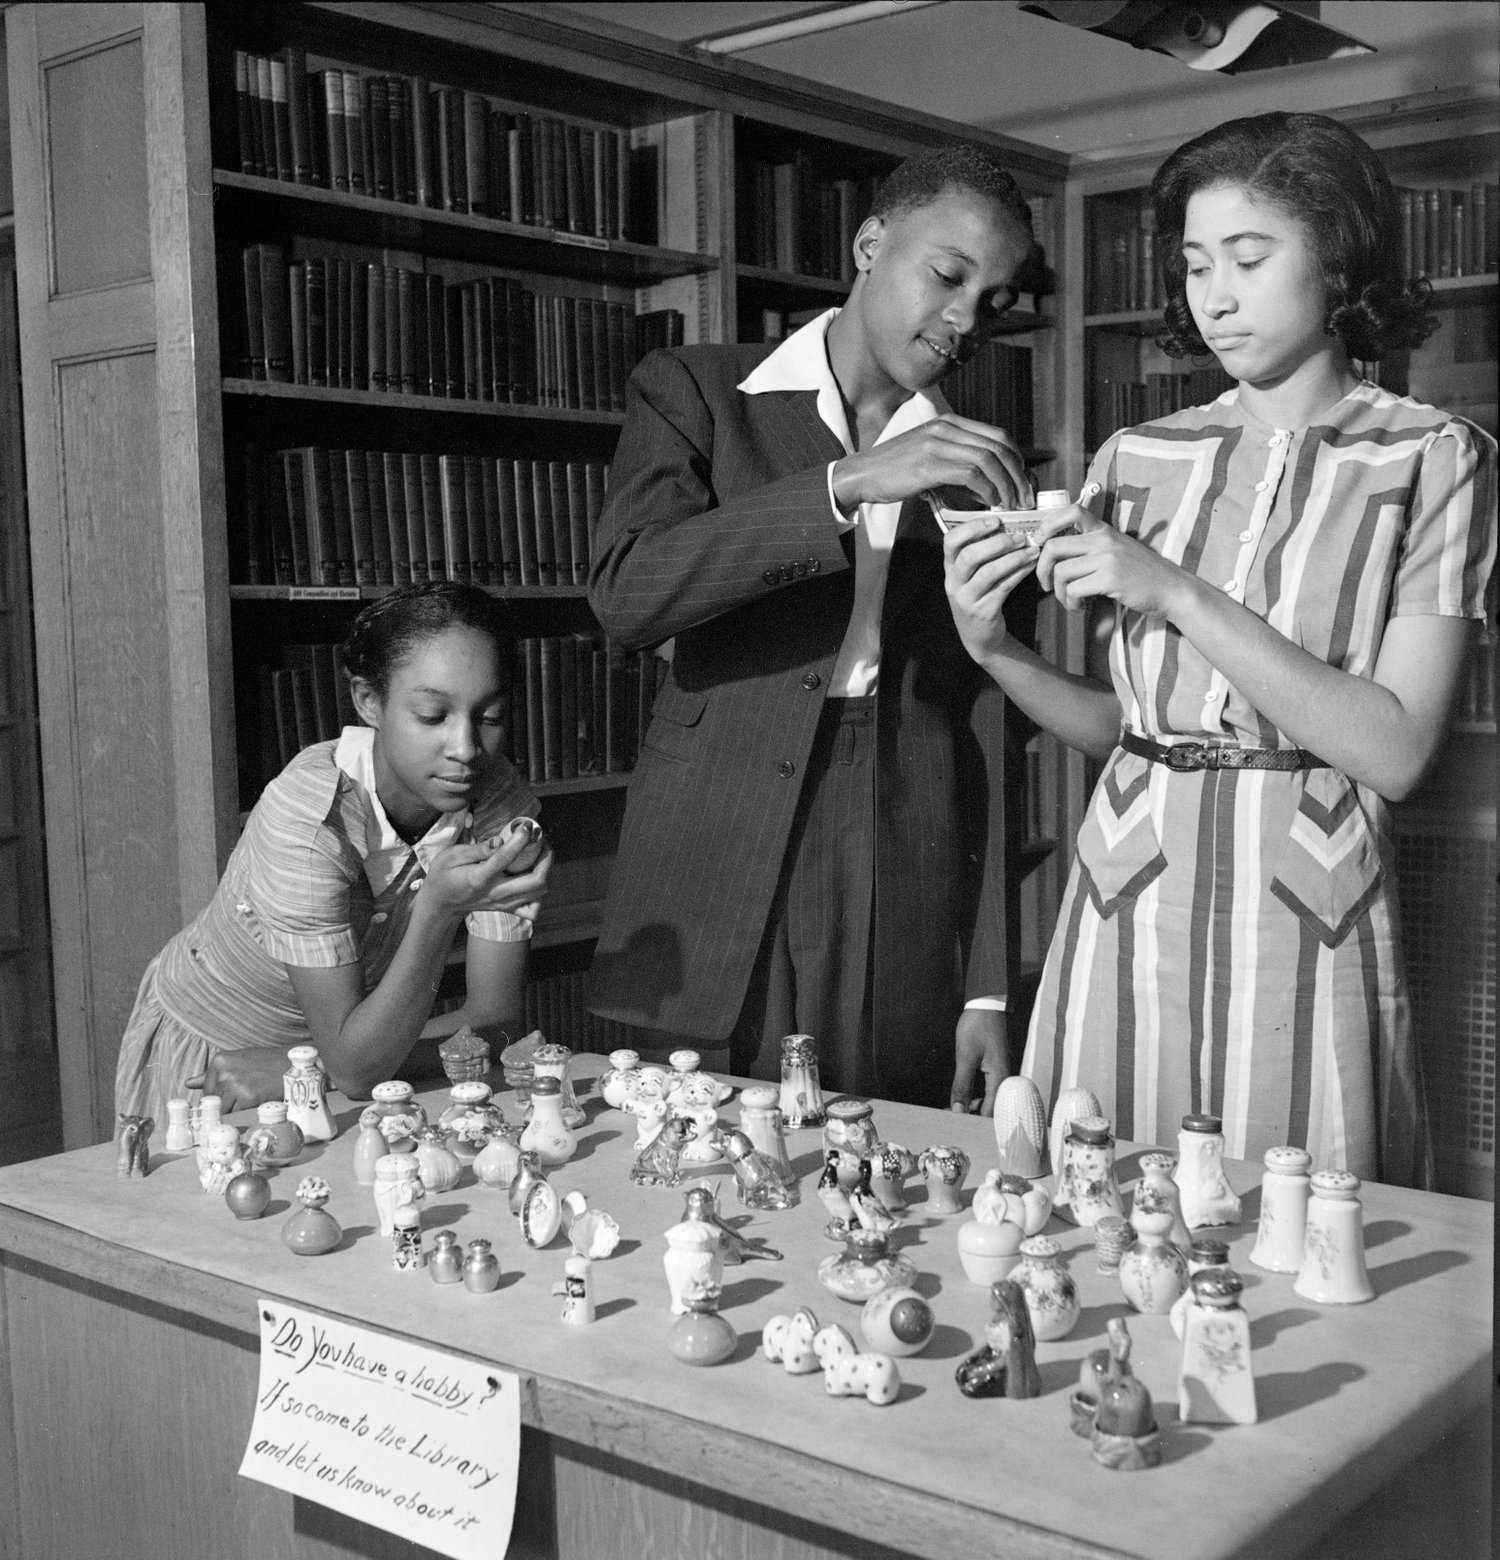 Vashon High School Students at a hobby show looking at collectible salt and pepper shakers, 1941.